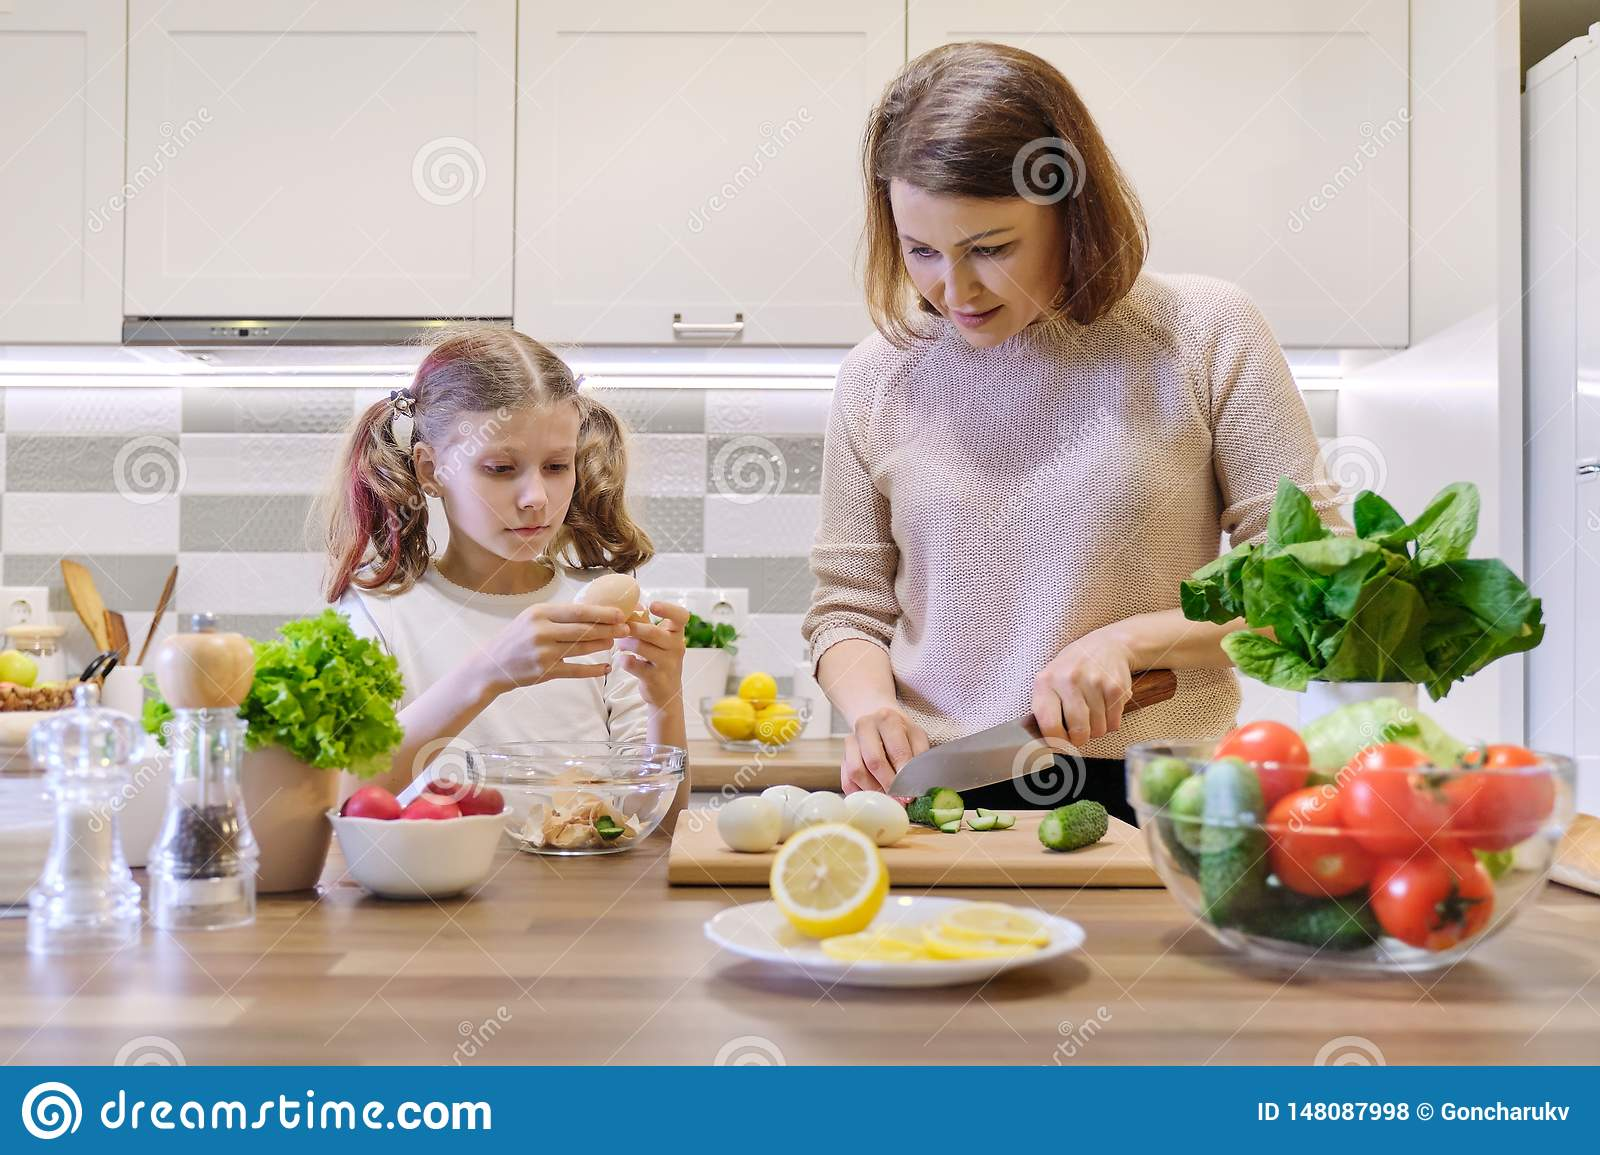 Smiling mother and daughter 8, 9 years old cooking together in kitchen vegetable salad. Healthy home food, communication parent